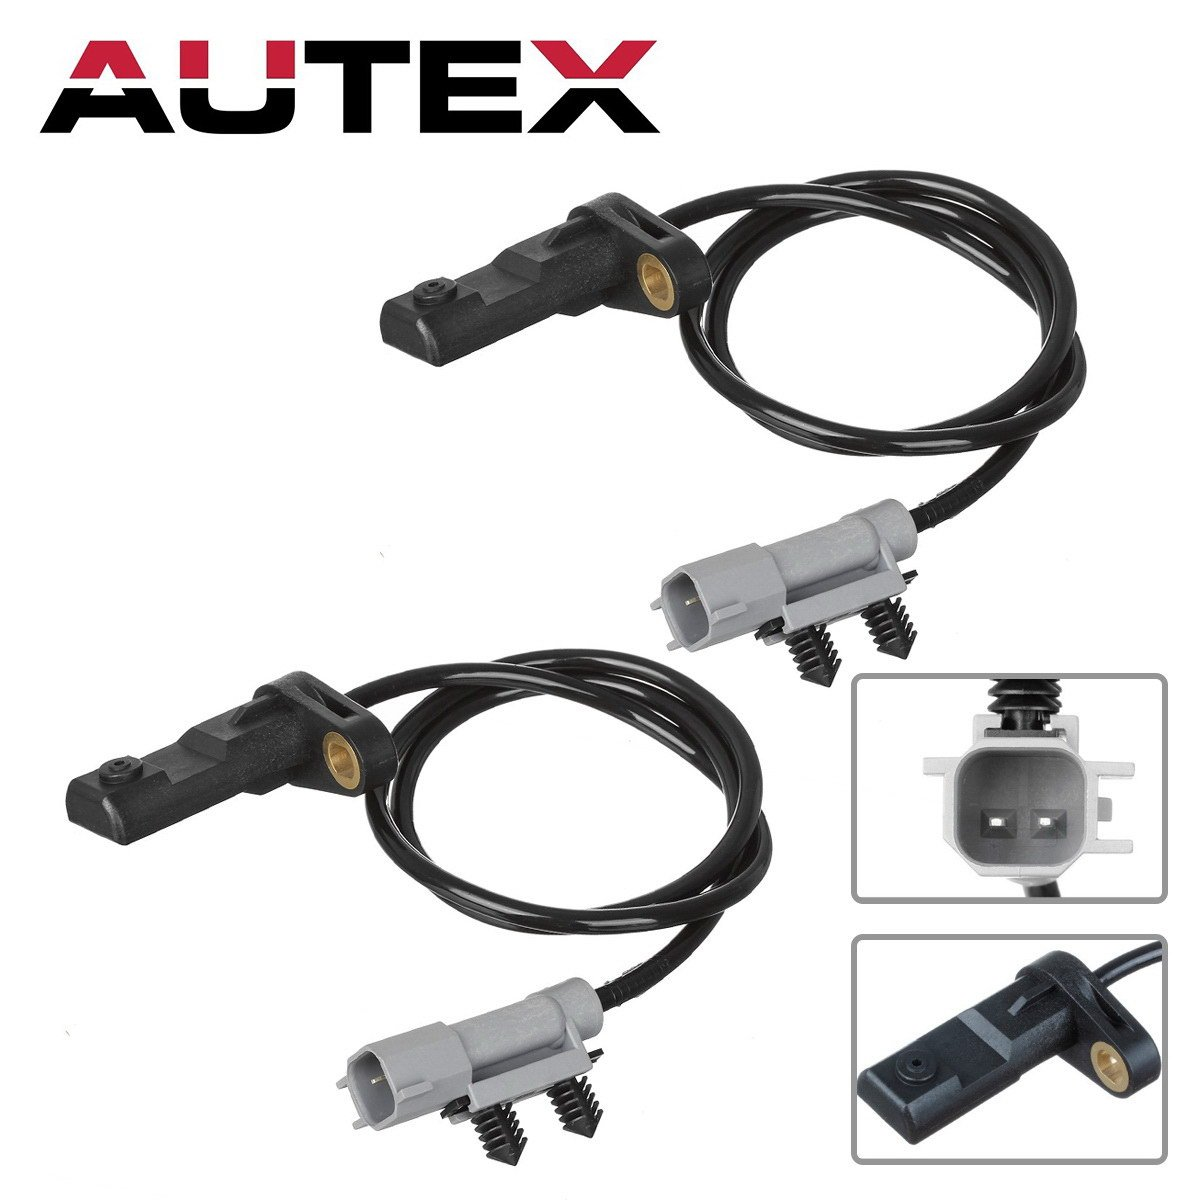 Sequoia 2001-2007 Tundra 2000-2006 ABS Wheel Speed Sensor Front-Right Fits